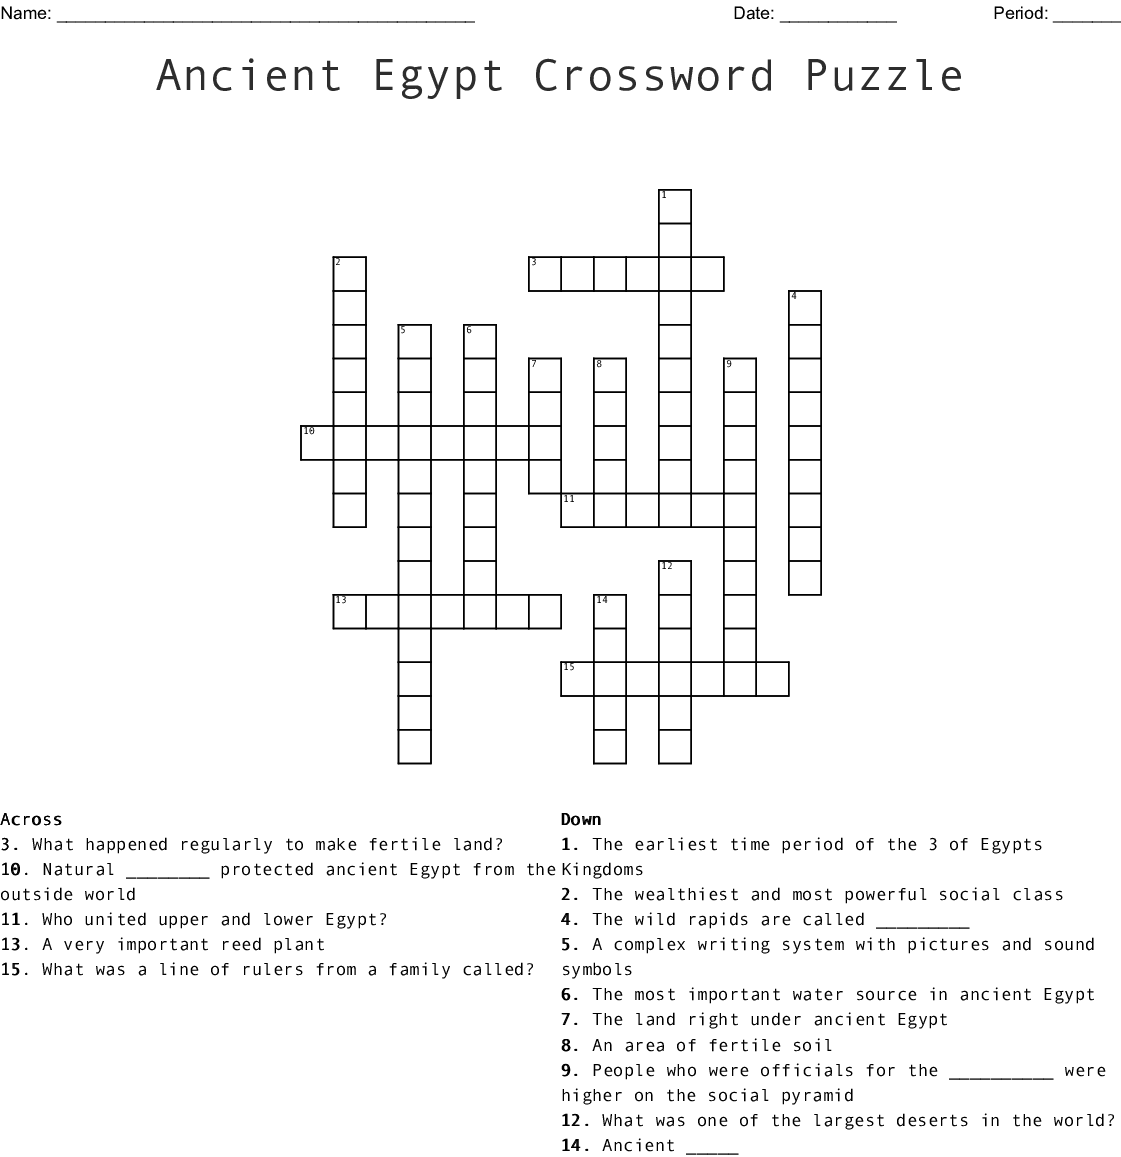 Geography Of Ancient Egypt Crossword